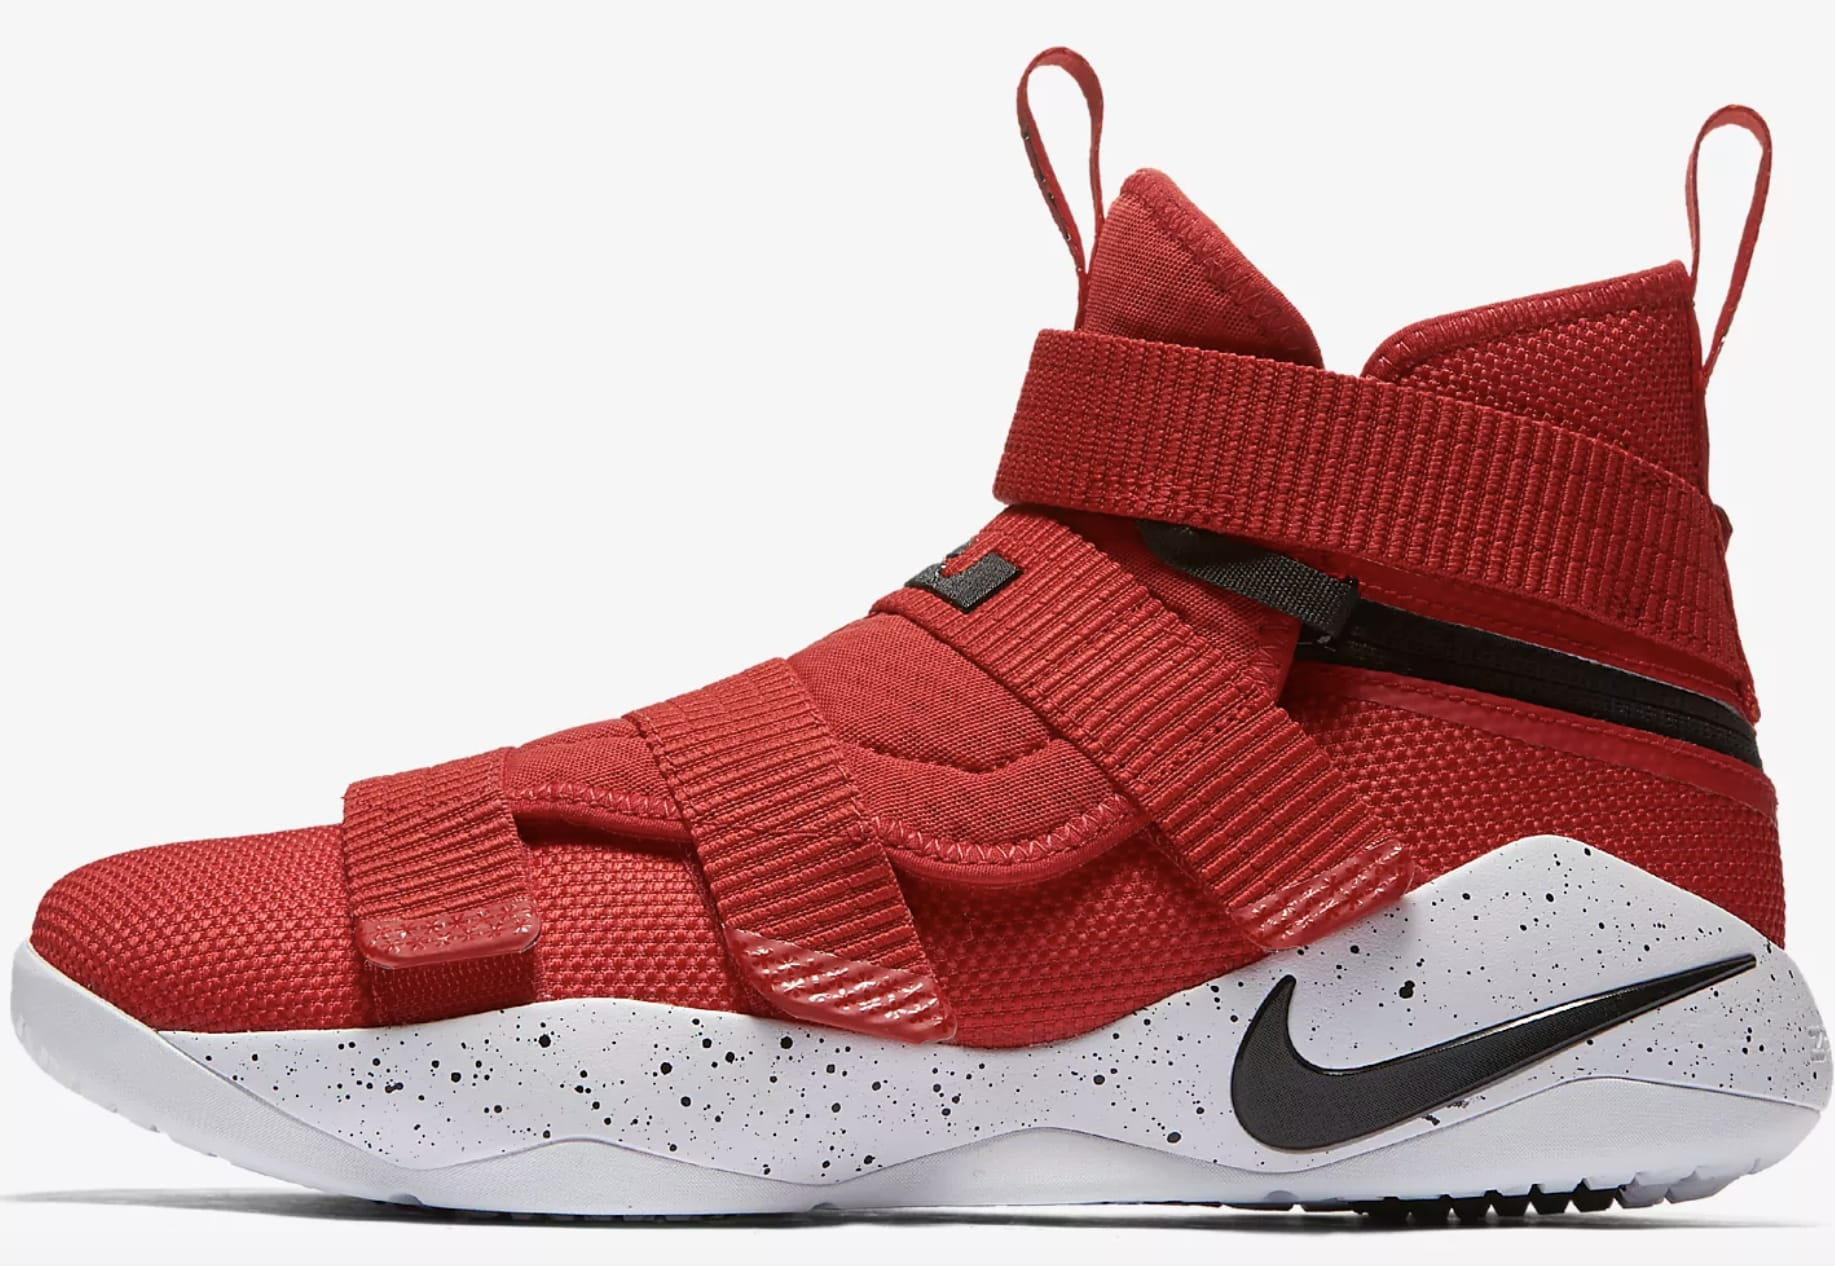 Where Can You Buy Lebron James Shoes